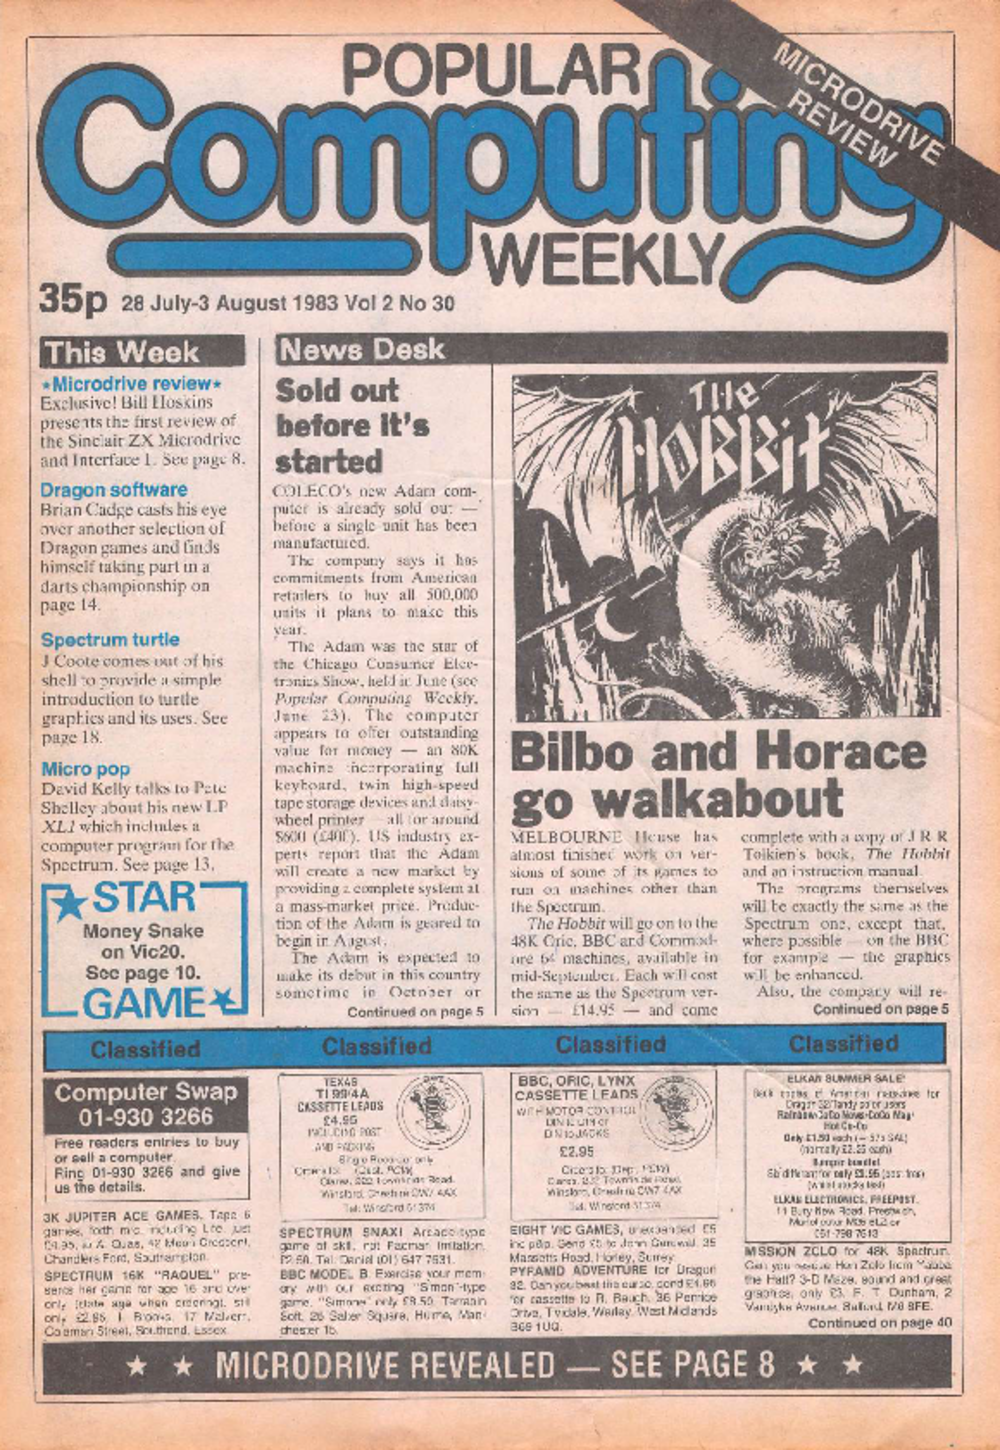 Article: Popular Computing Weekly Vol 2 No 30 - 28 July - 3 August 1983